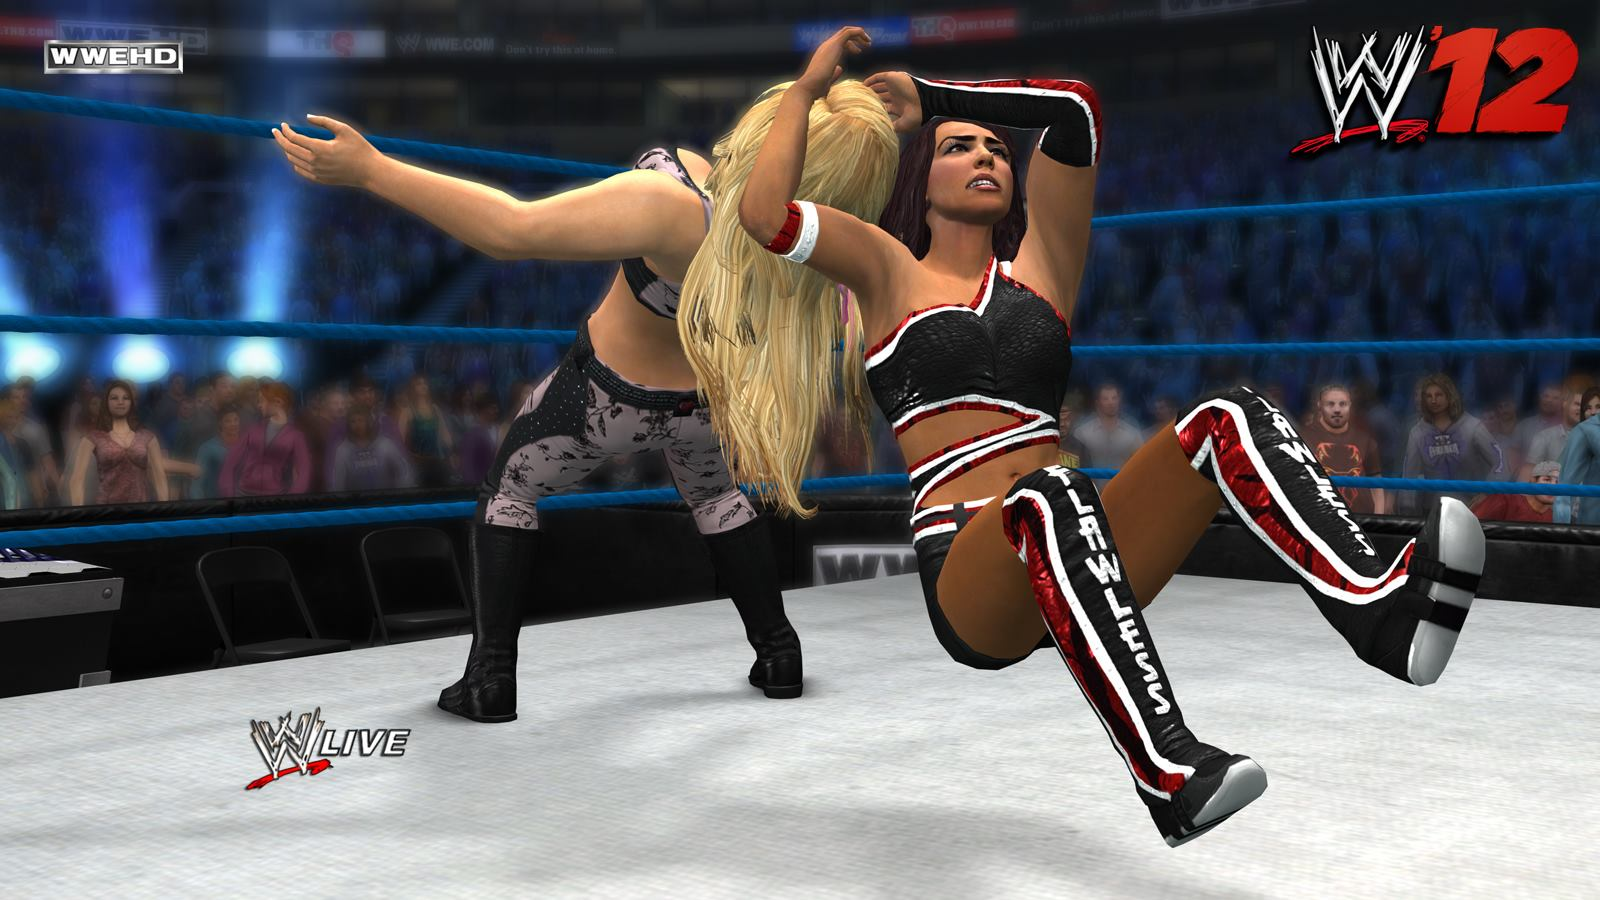 New WWE '12 DLC arrives for all